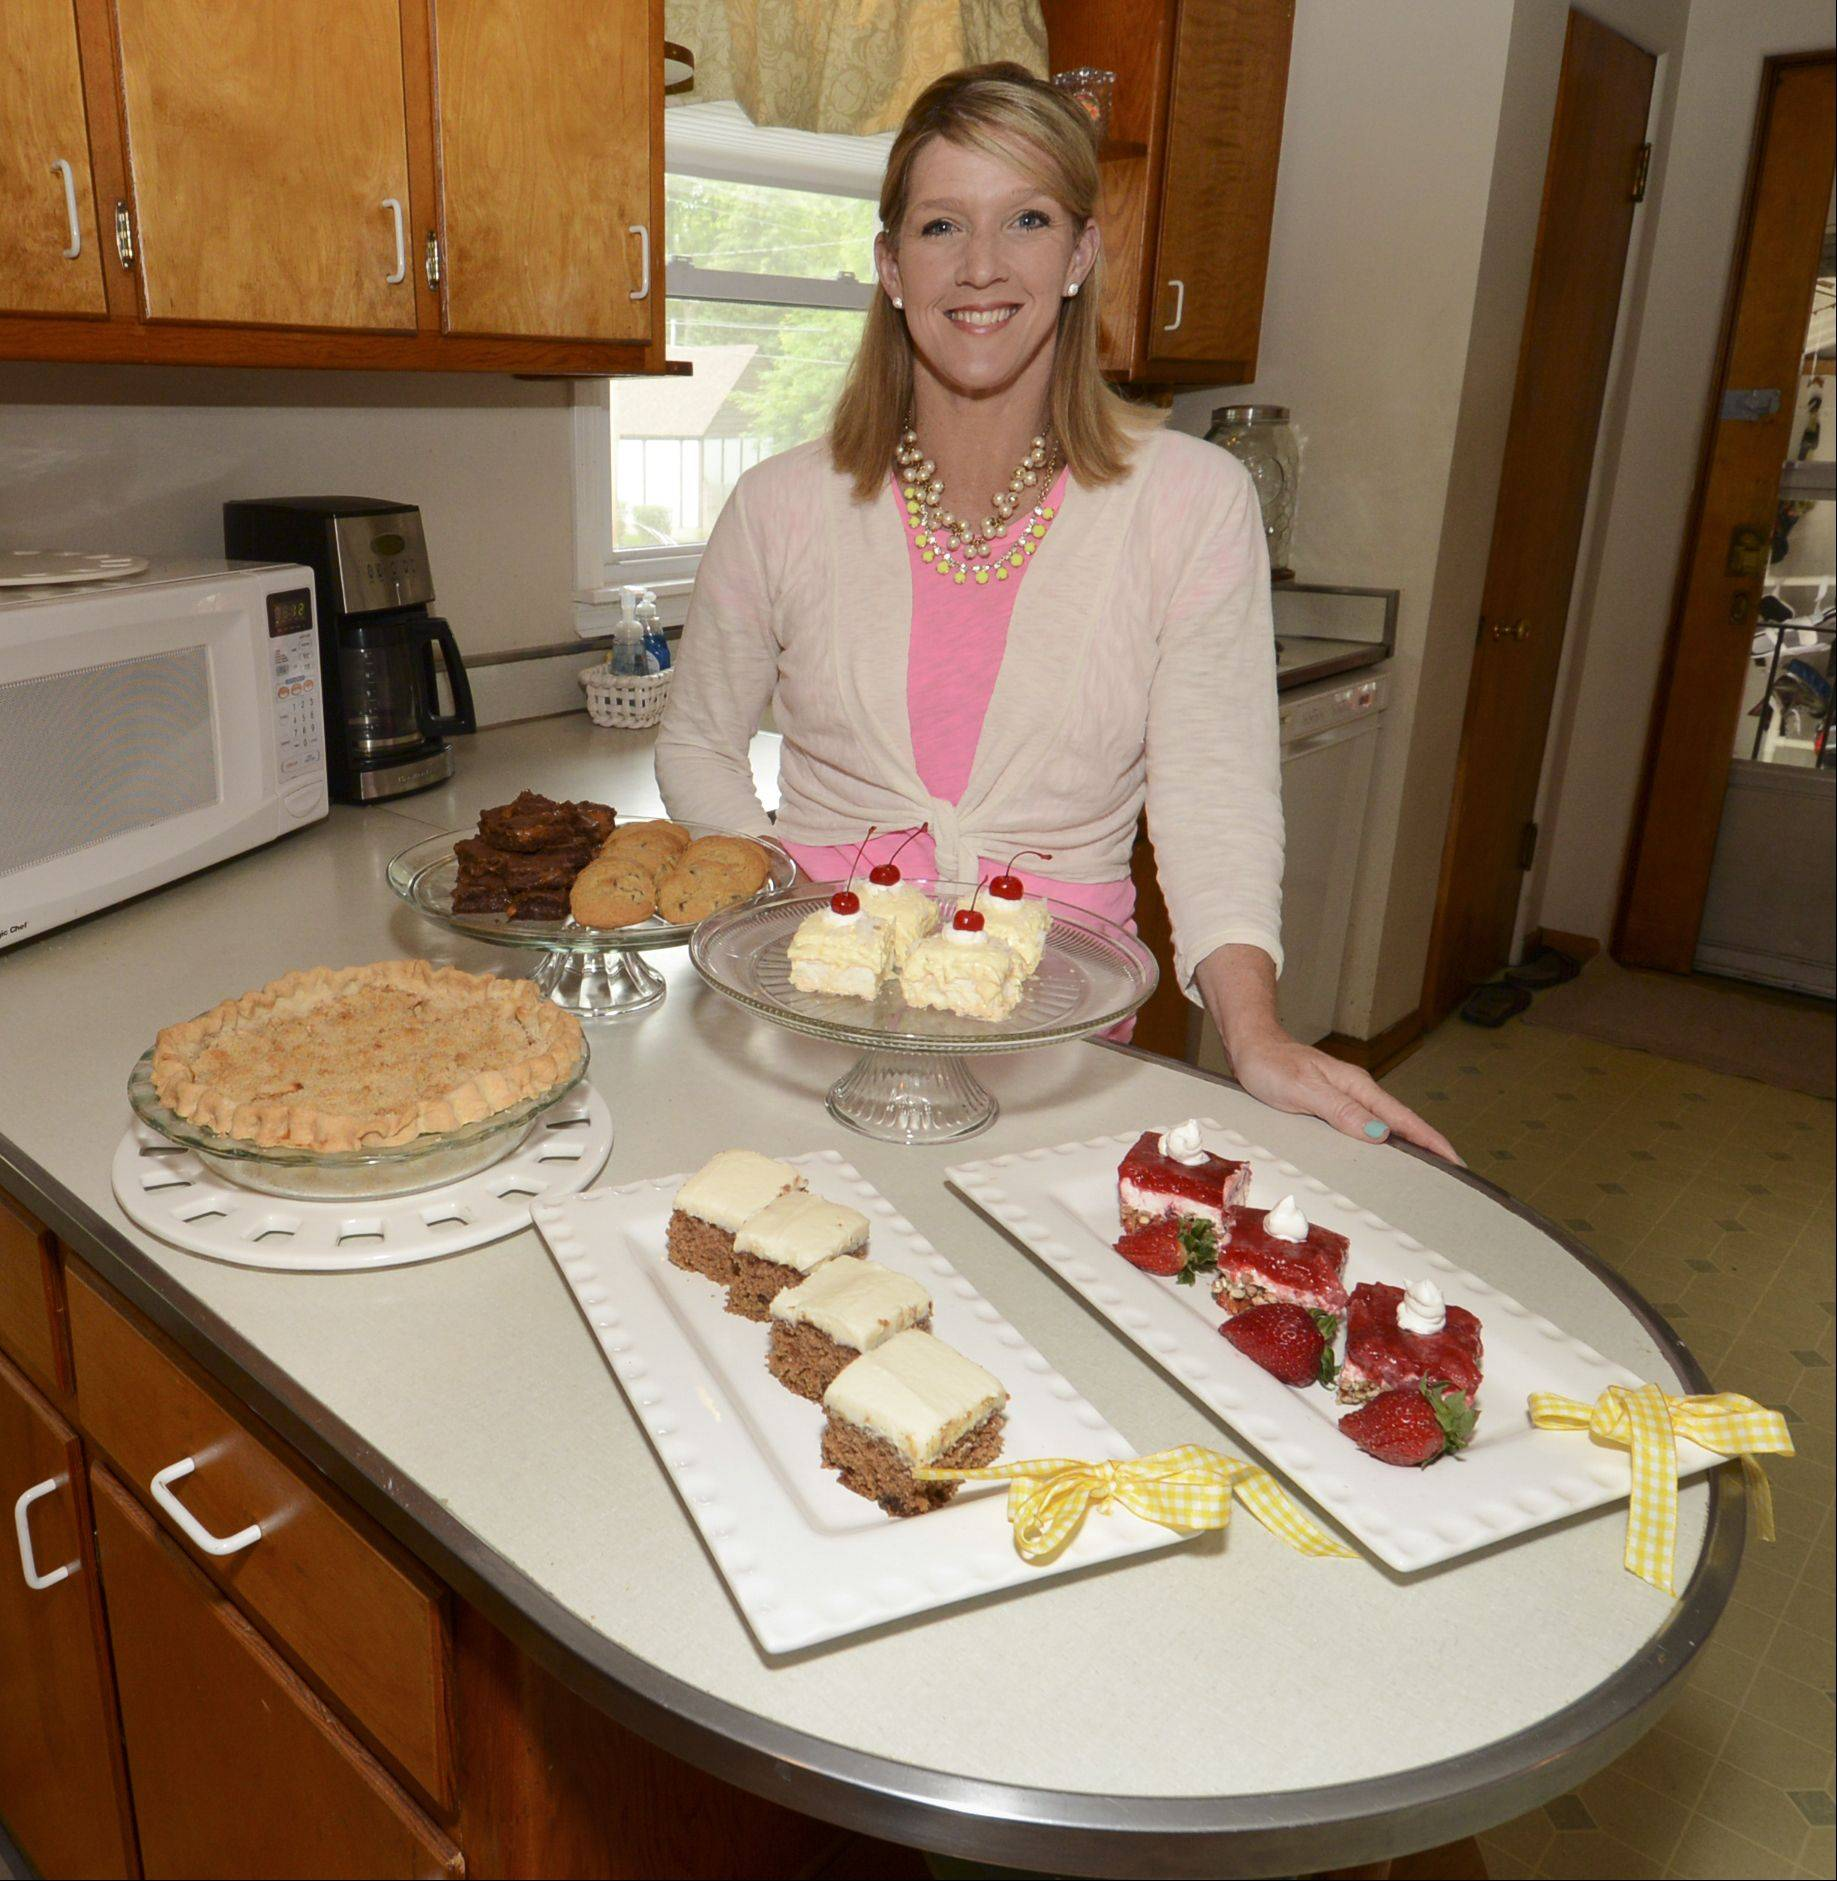 Karen Felker says her small-town roots have helped her find balance when it comes to her love of dessert.